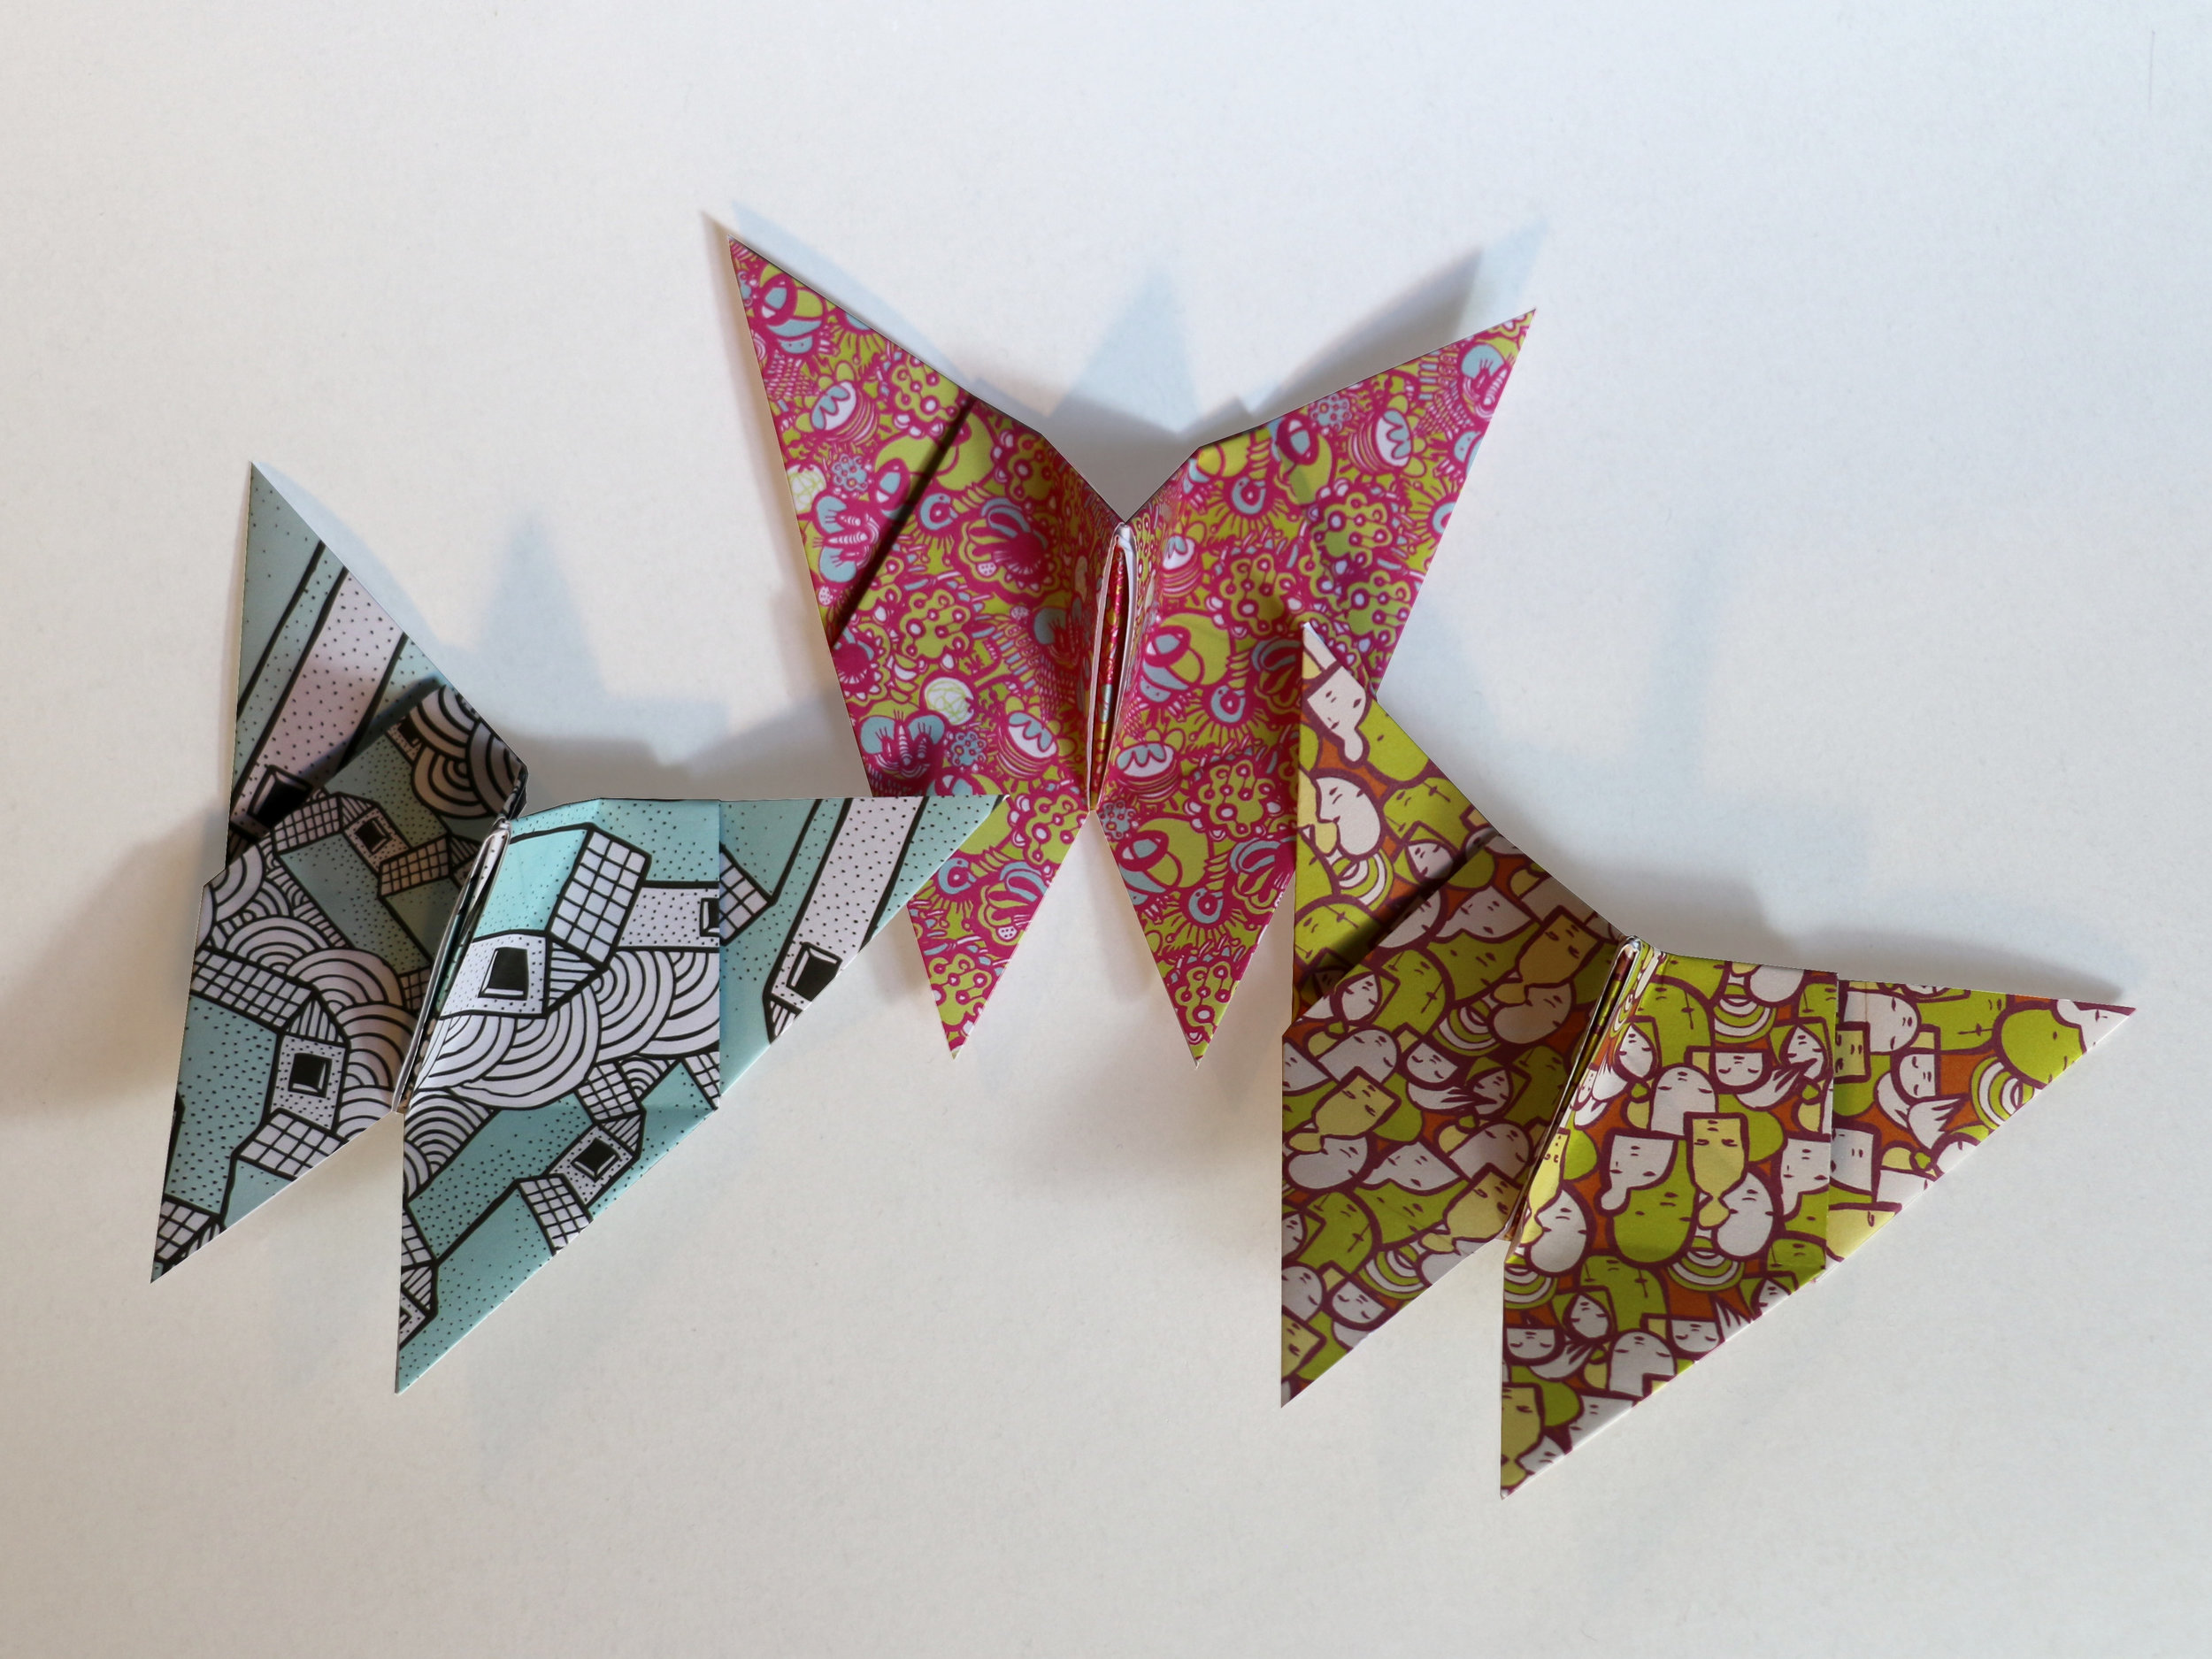 Designer Pattern Origami Paper - A cutting edge range of exclusive designs, made with sustainably sourced, FSC-certifed paper